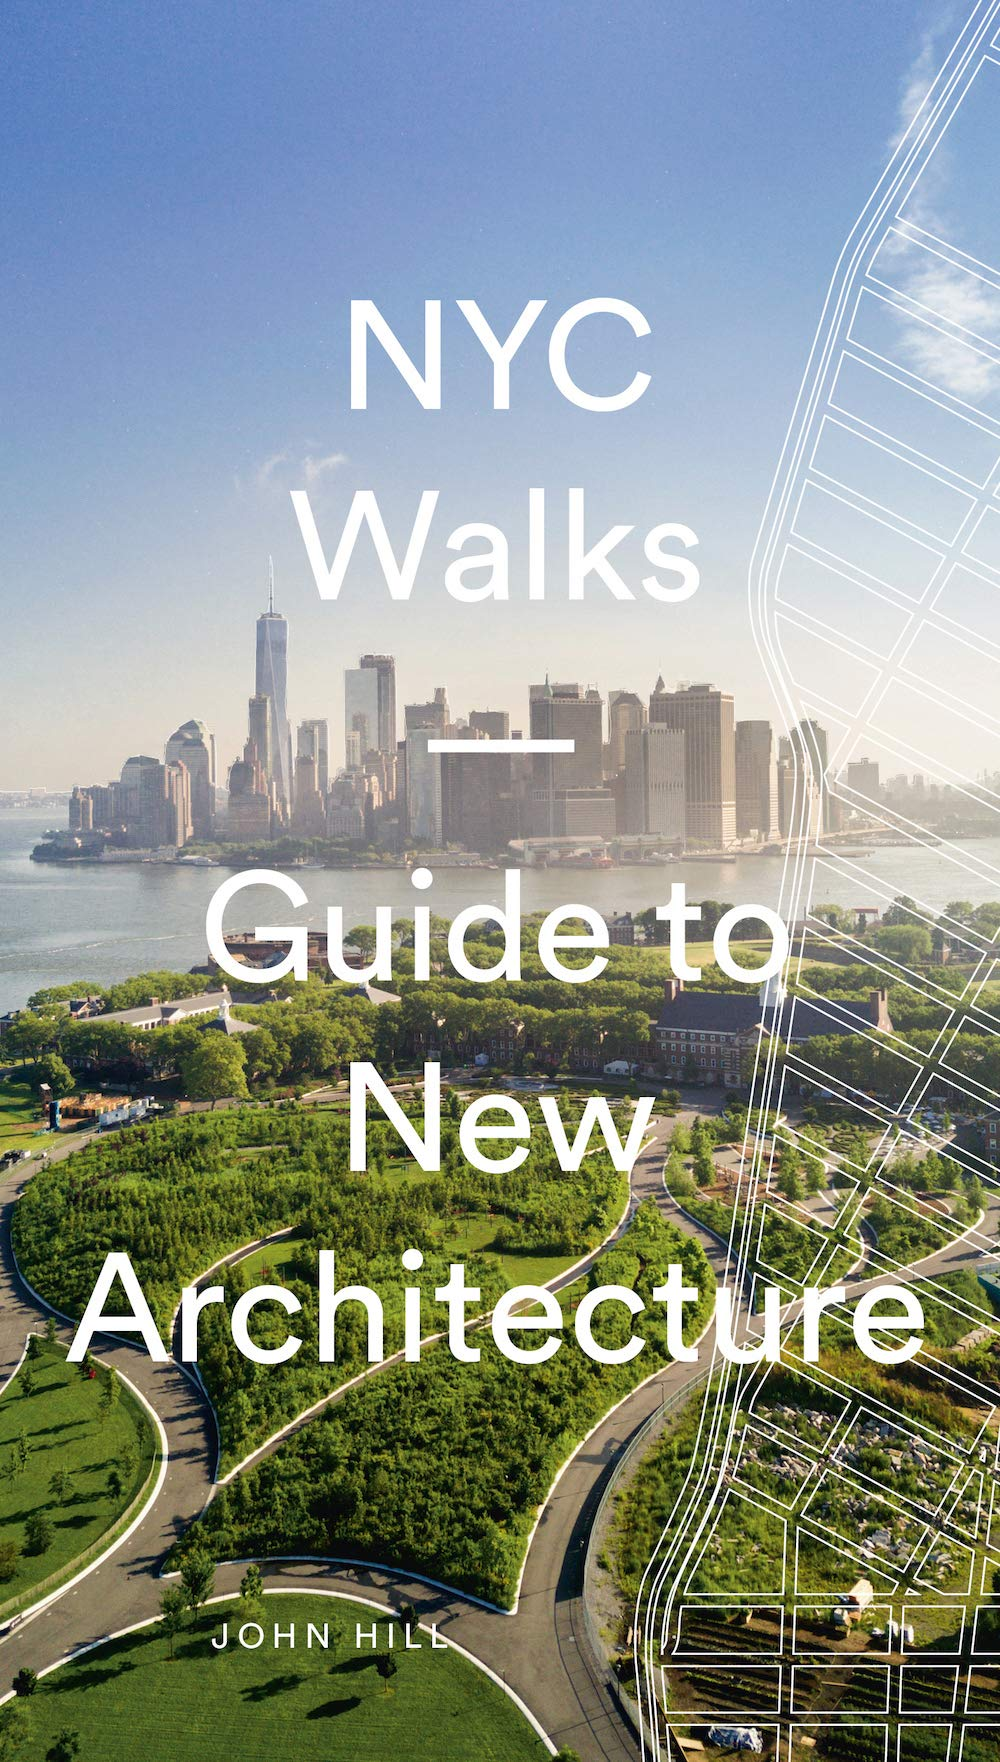 NYC Walks: Guide to New Architecture - Autor:John Hill is editor-in-chief of international e-magazine World-Architects.com and founder of the blog A Daily Dose of Architecture. He is the author of 100 Years, 100 Buildings and 100 Years, 100 Landscape Designs (both by Prestel). He lives in New York City.Photographer:PAVEL BENDOV is a New York and Los Angeles-based architectural photographer and the author of New Architecture New York (Prestel).